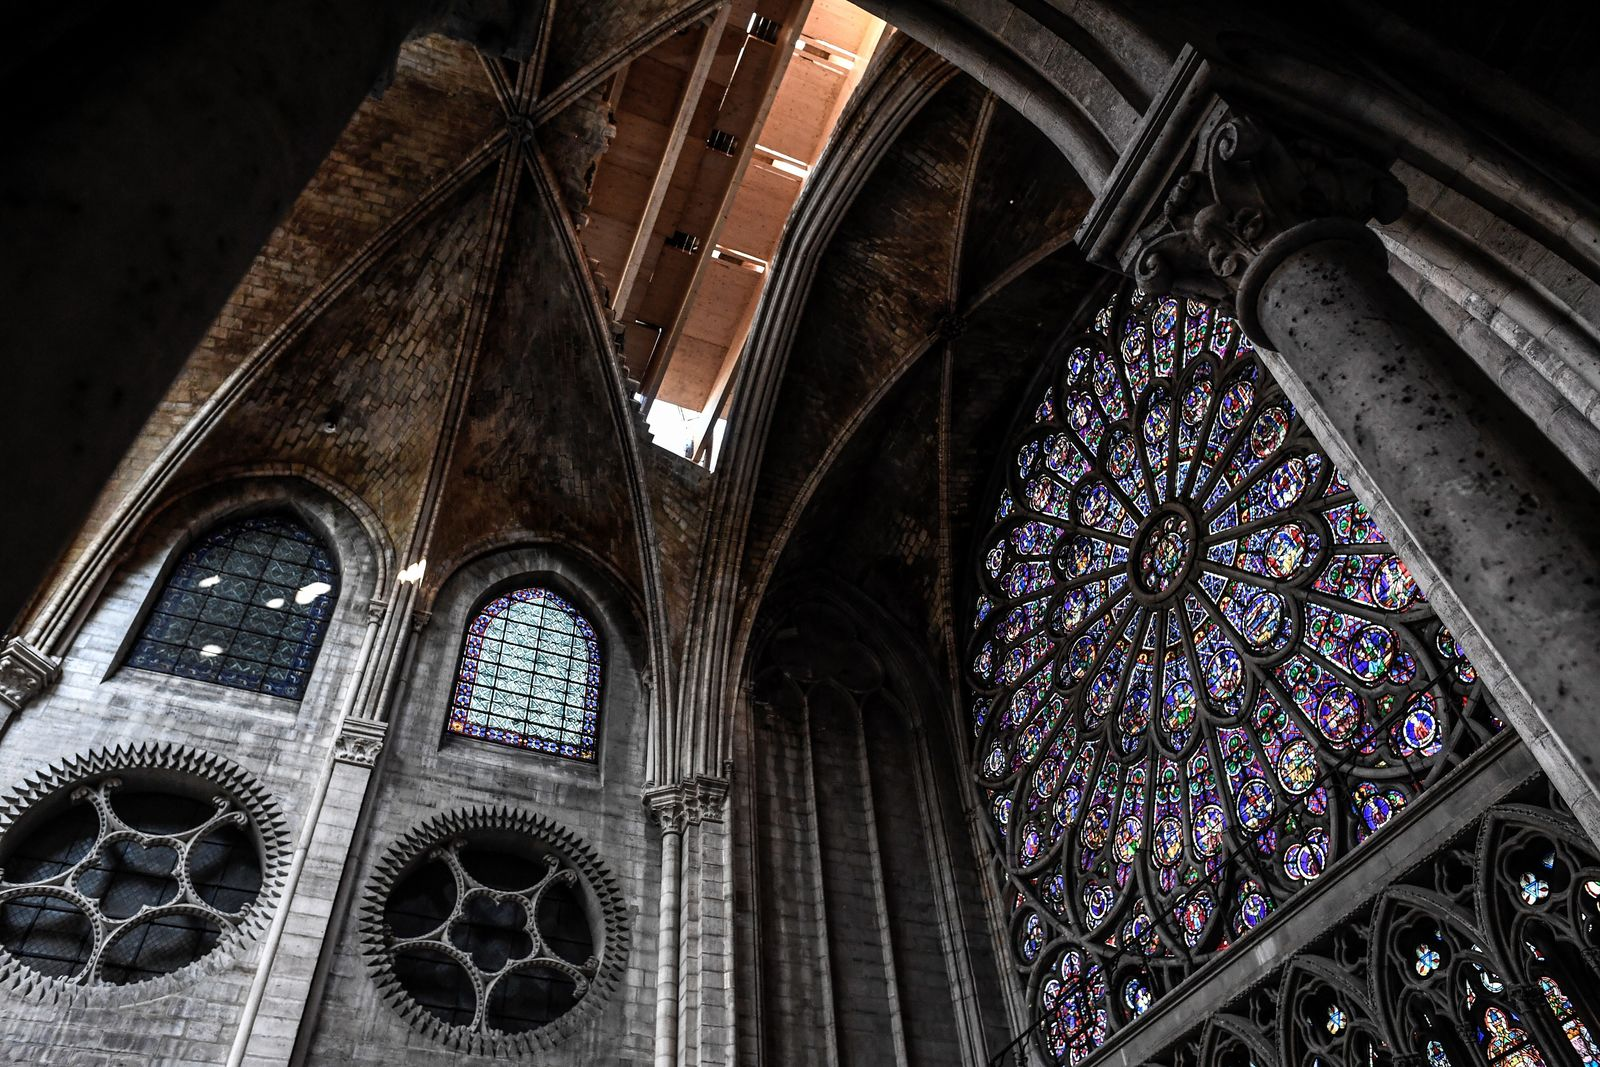 The rose window is pictured during preliminary work in the Notre-Dame de Paris Cathedral three months after a major fire Wednesday, July 17, 2019 in Paris. The chief architect of France's historic monuments says that three months after the April 15 fire that devastated Notre Dame Cathedral the site is still being secured. (Stephane de Sakutin/Pool via AP)